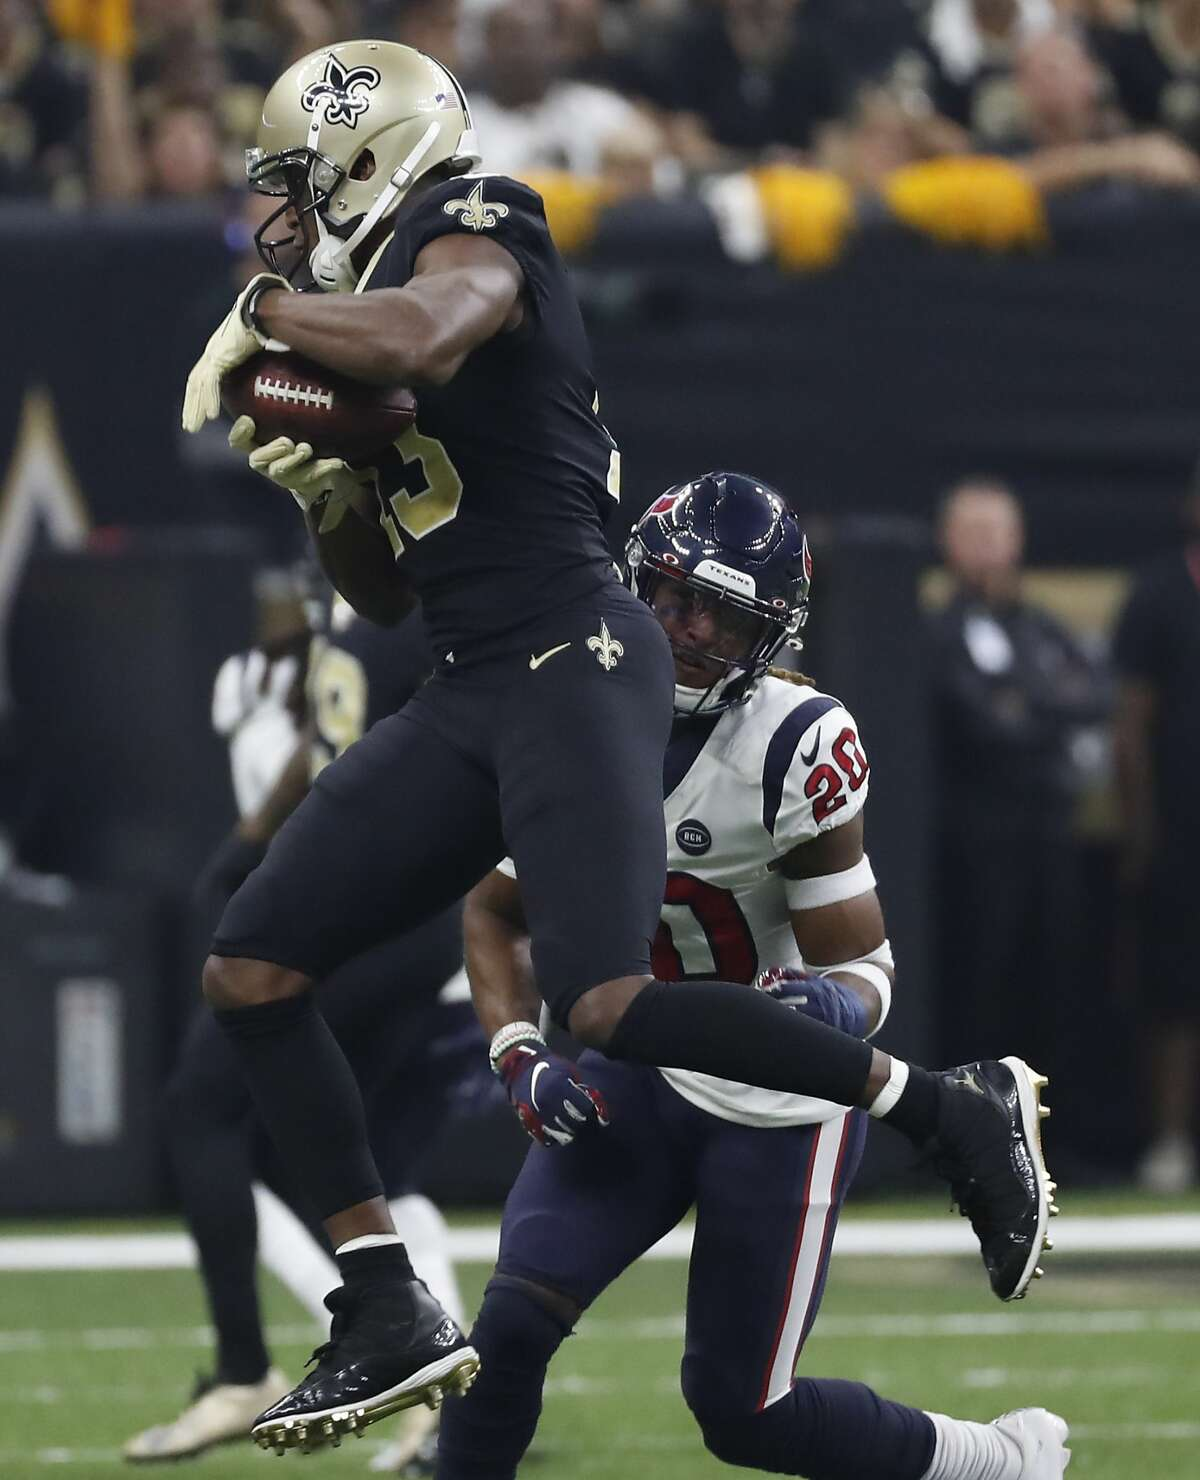 New Orleans Saints wide receiver Michael Thomas (13) pulls down a reception in front of Houston Texans strong safety Justin Reid (20) during the second quarter of an NFL football game at the Mercedes-Benz Superdome on Monday, Sept. 9, 2019, in New Orleans.